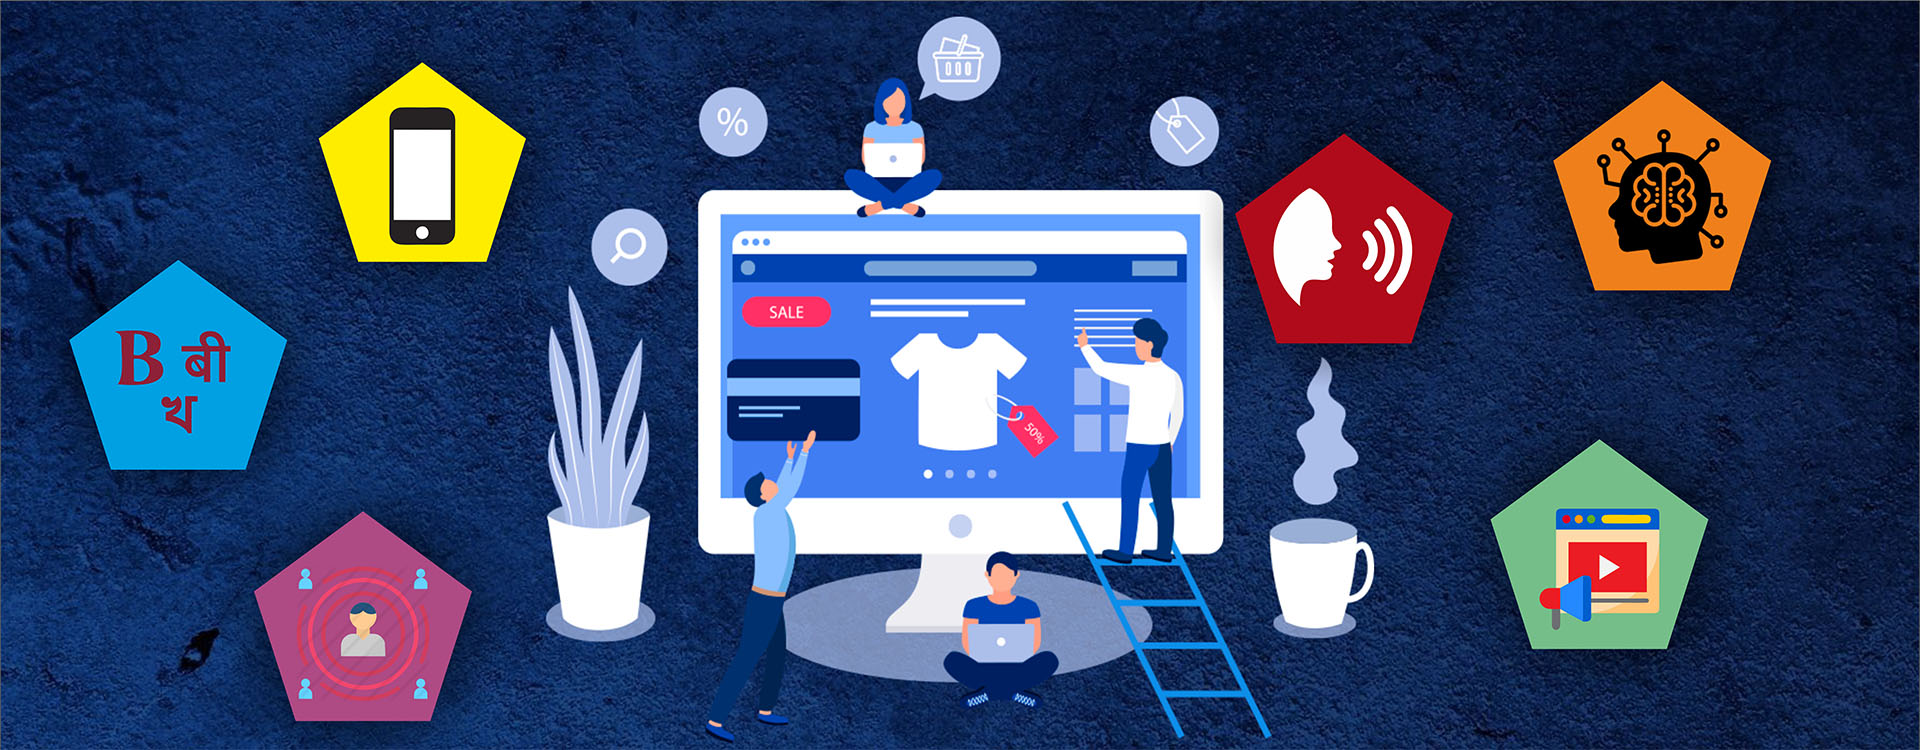 Marketing Trends in e-commerce 2021 will largely based on consumer data and behaviour